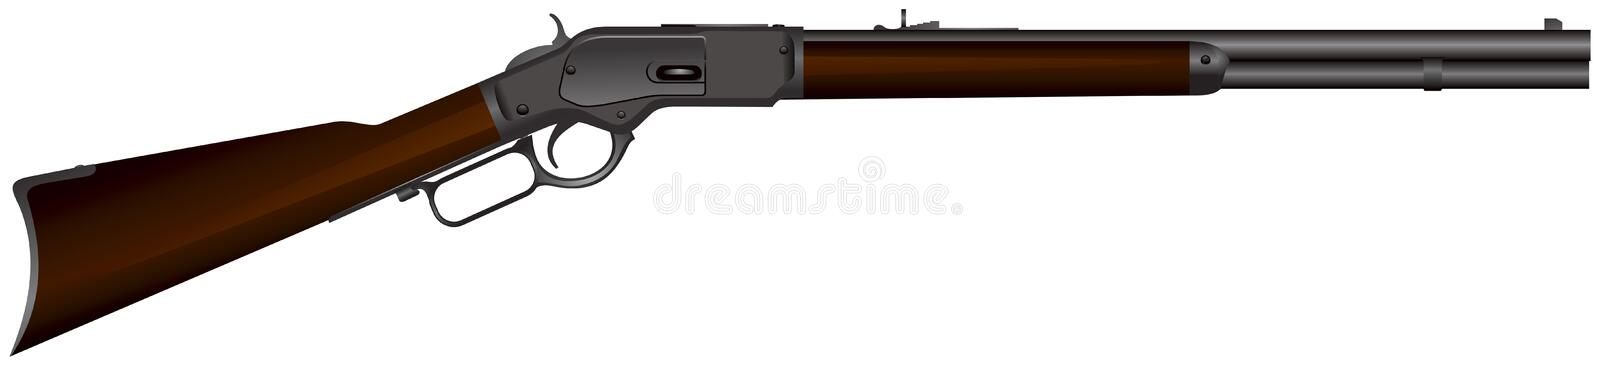 Fusil occidental sauvage illustration libre de droits